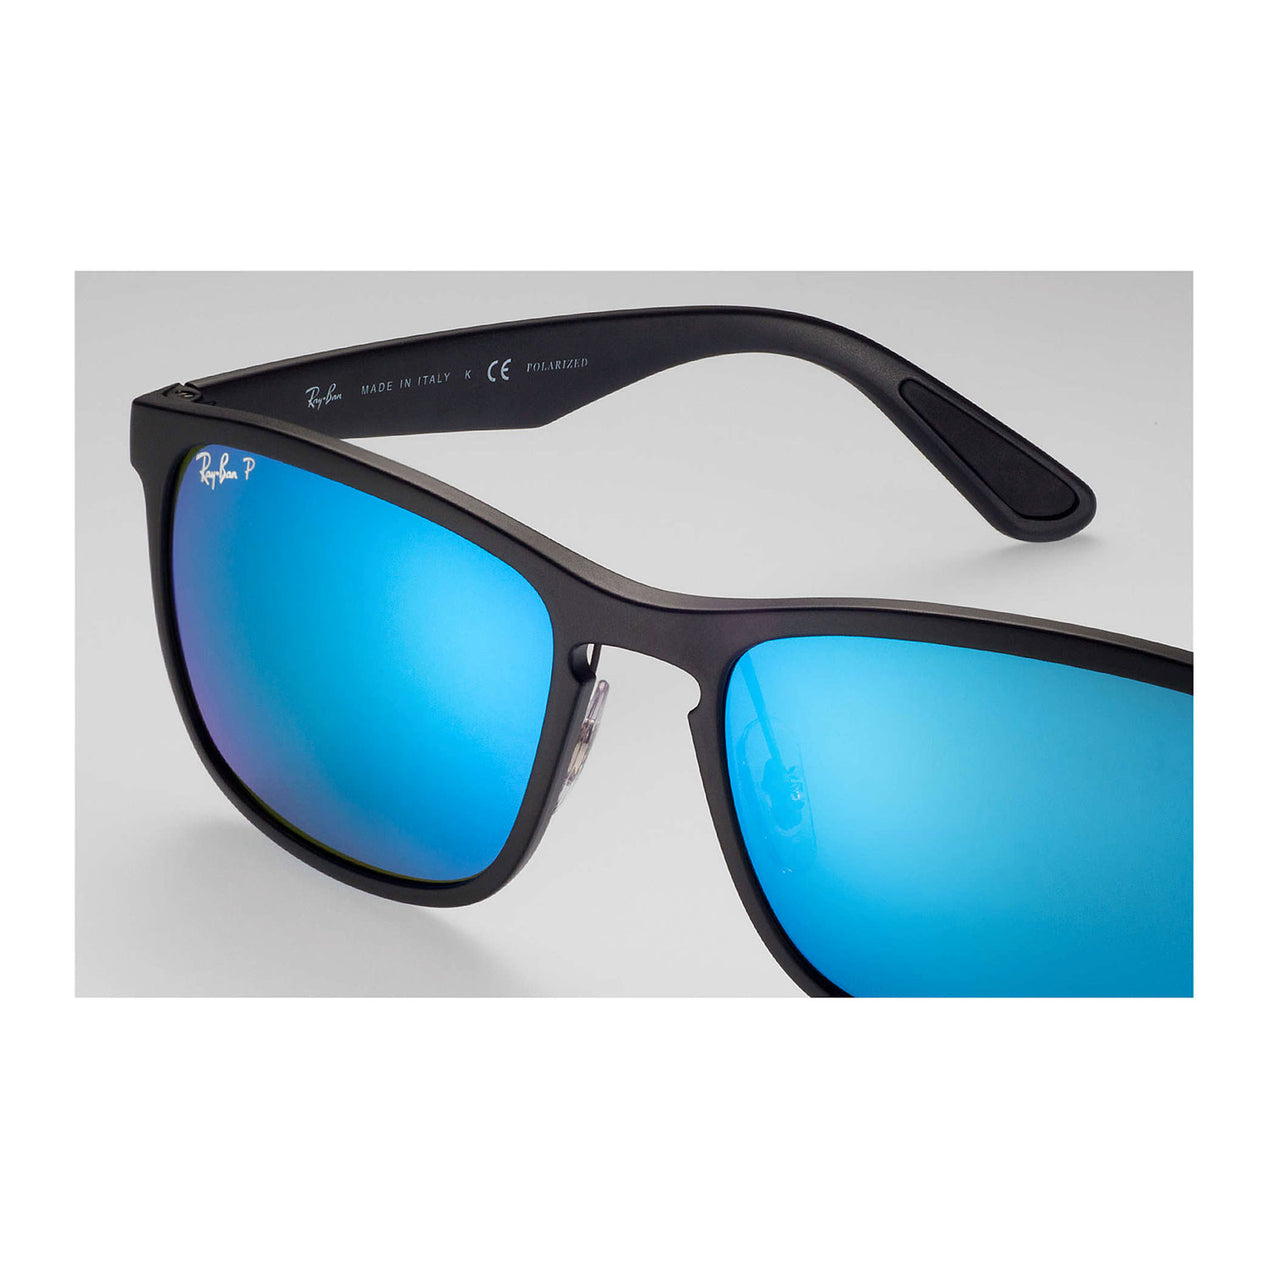 273e0ac51c86c Ray Ban Rb4264 Chromance - Black Frame - Blue Mirror Polarized Lens ...